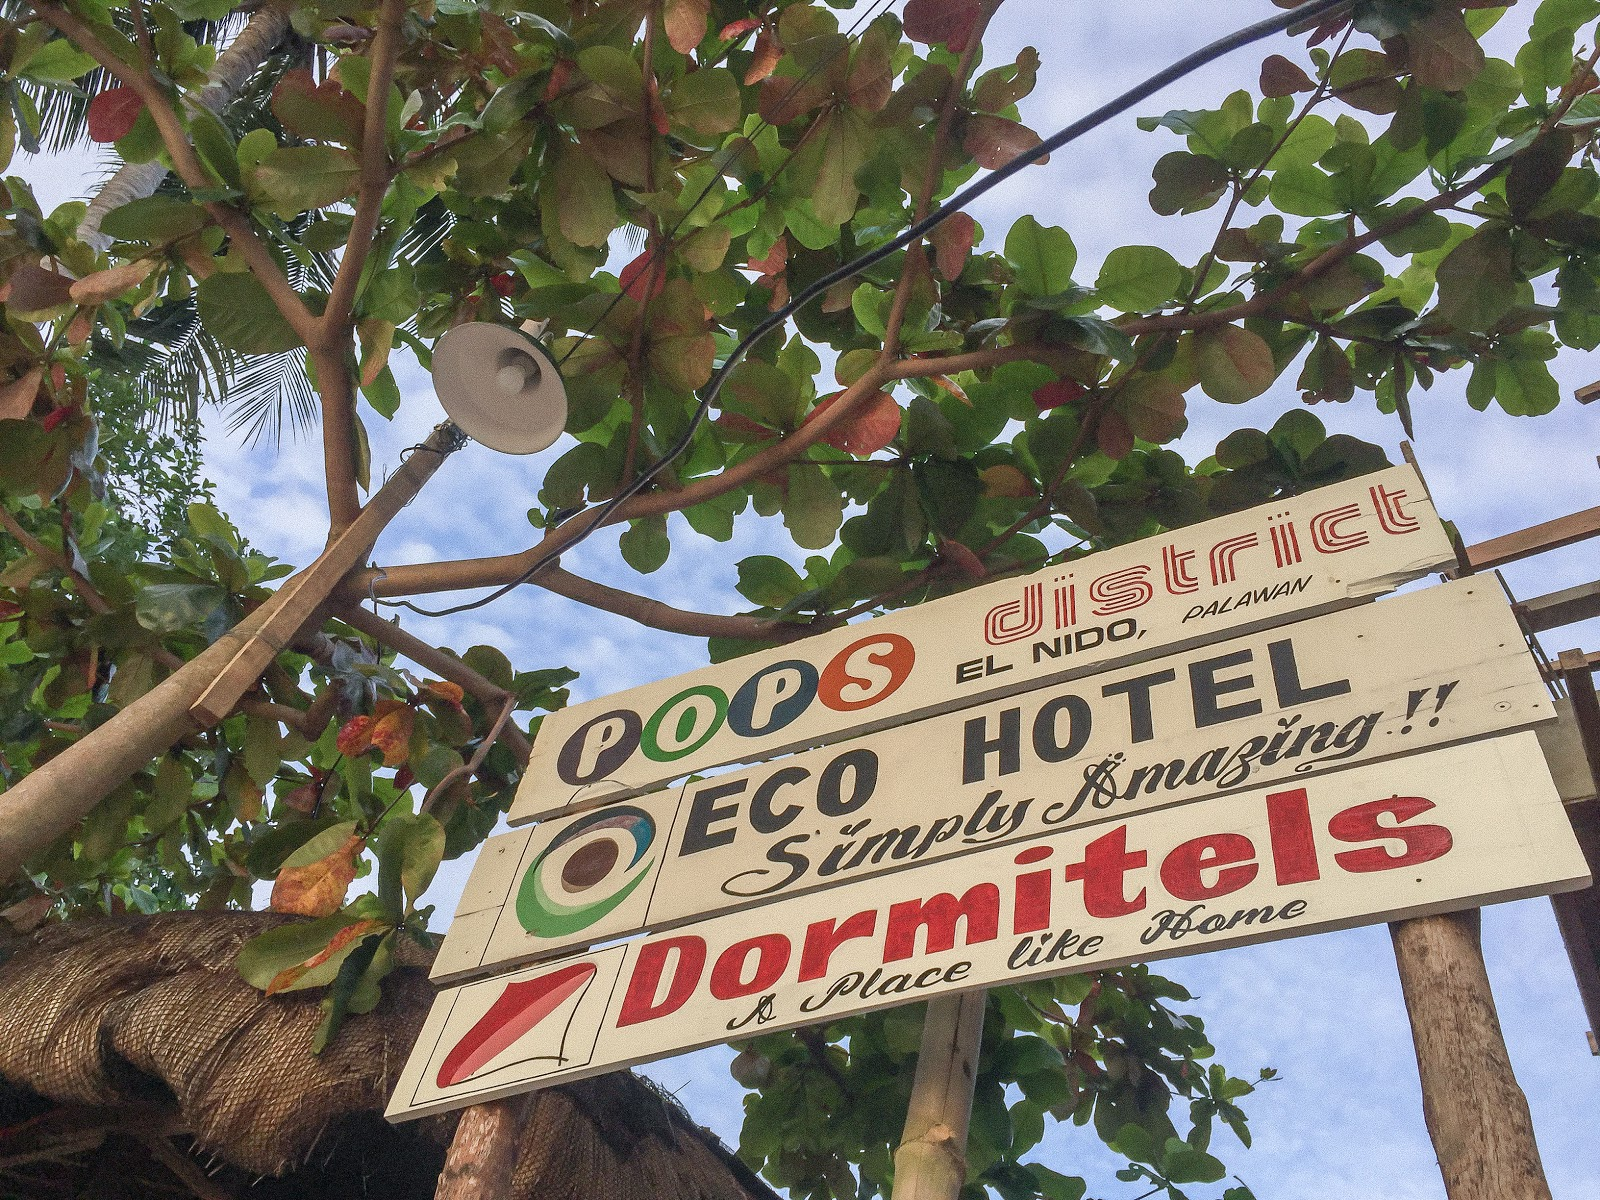 photo of Dormitel and Ecohotels